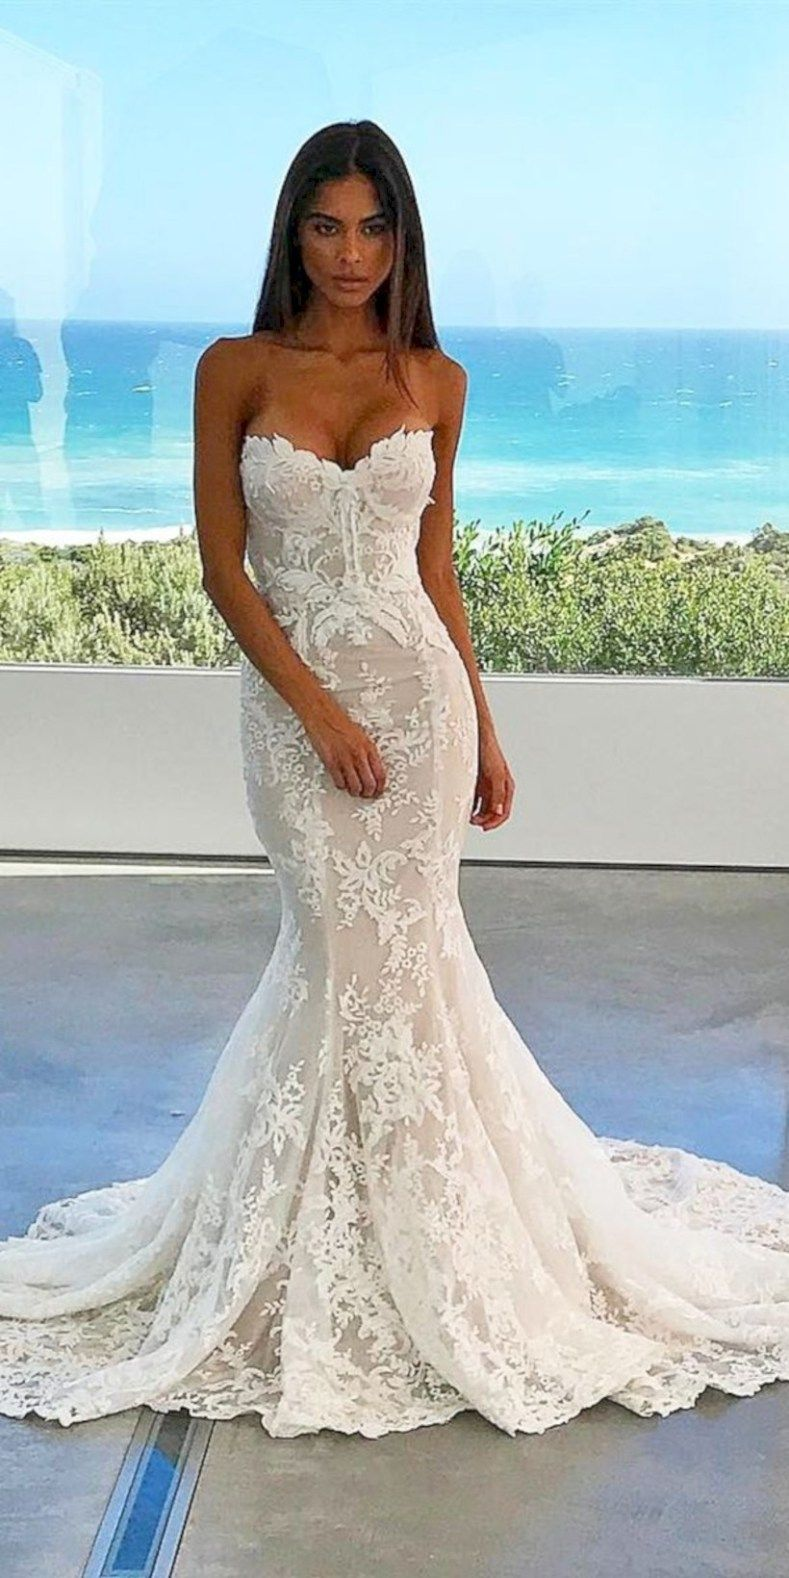 47 Affordable Winter Wedding Dress Ideas To Save Your Money Vis Wed Wedding Dresses Lace Lace Mermaid Wedding Dress Wedding Dresses [ 1578 x 789 Pixel ]